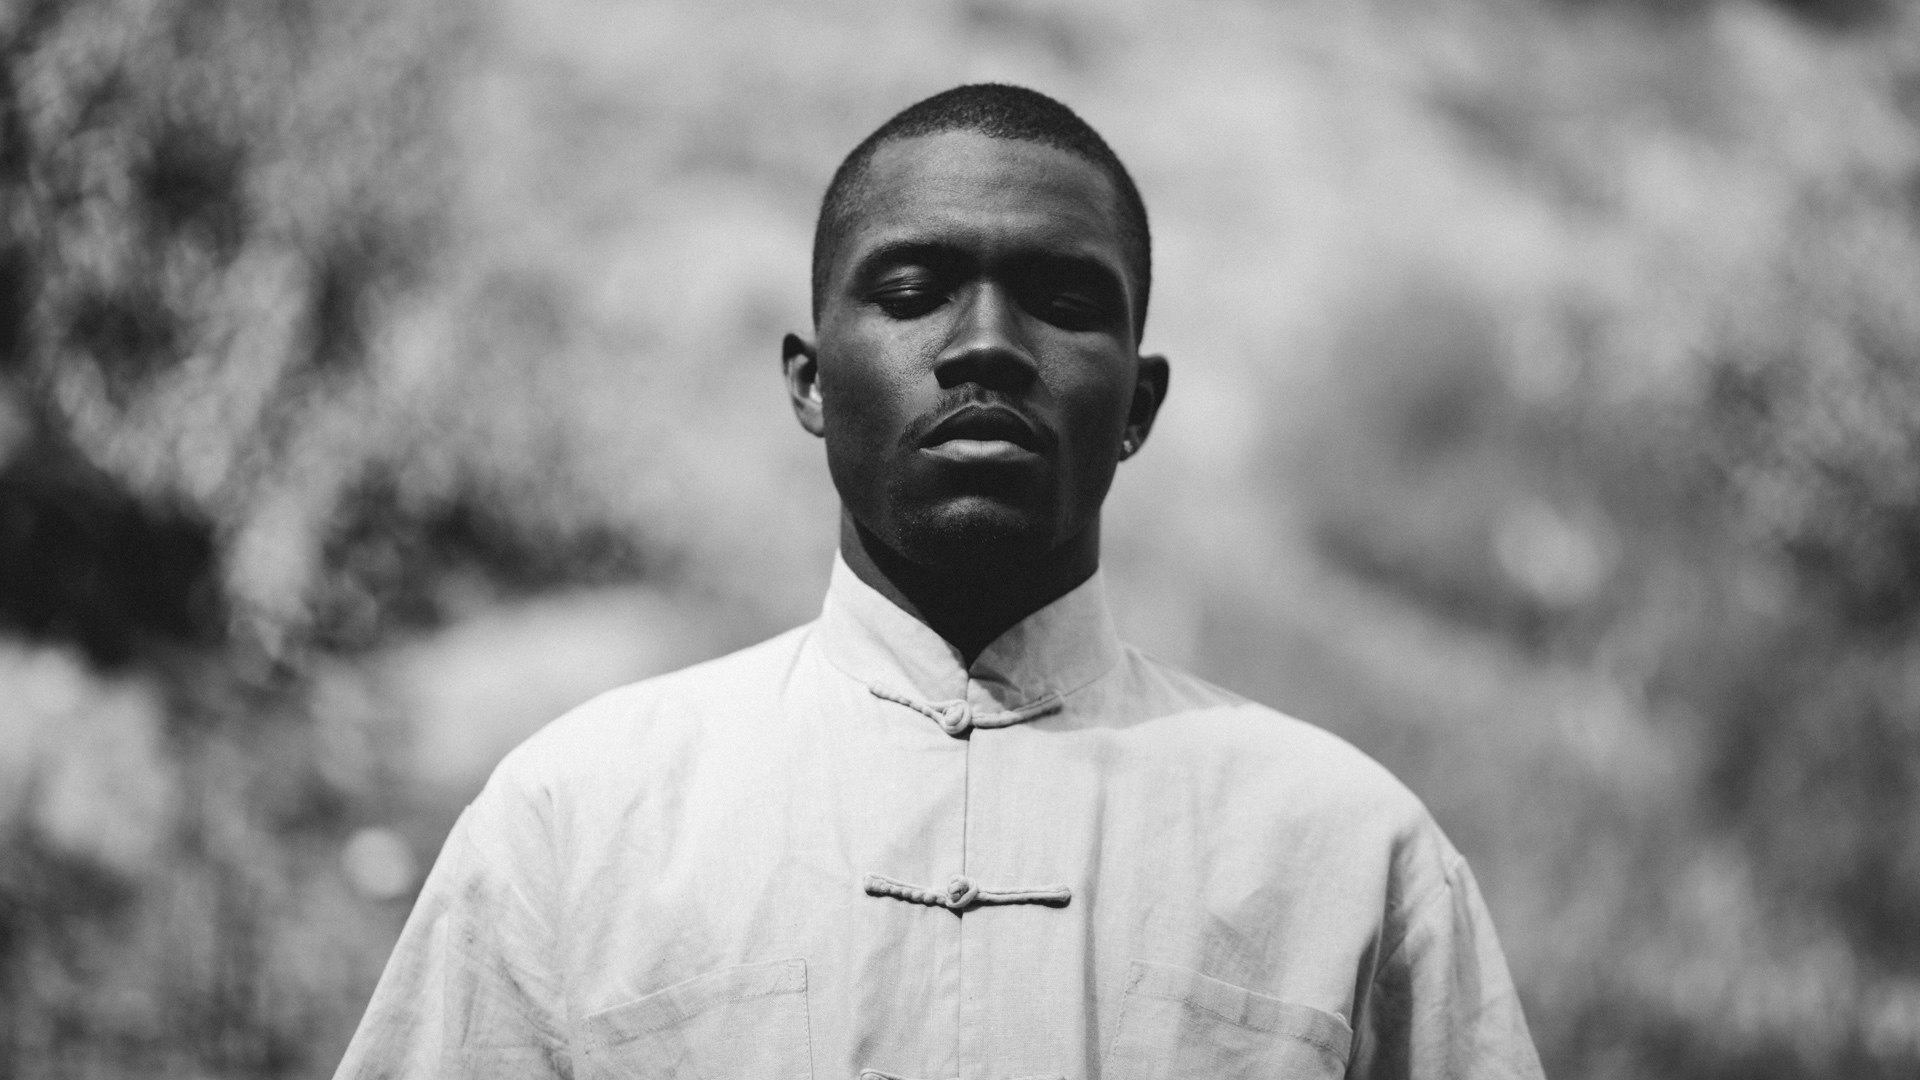 Frank Ocean Speaks Out On The Orlando Shooting